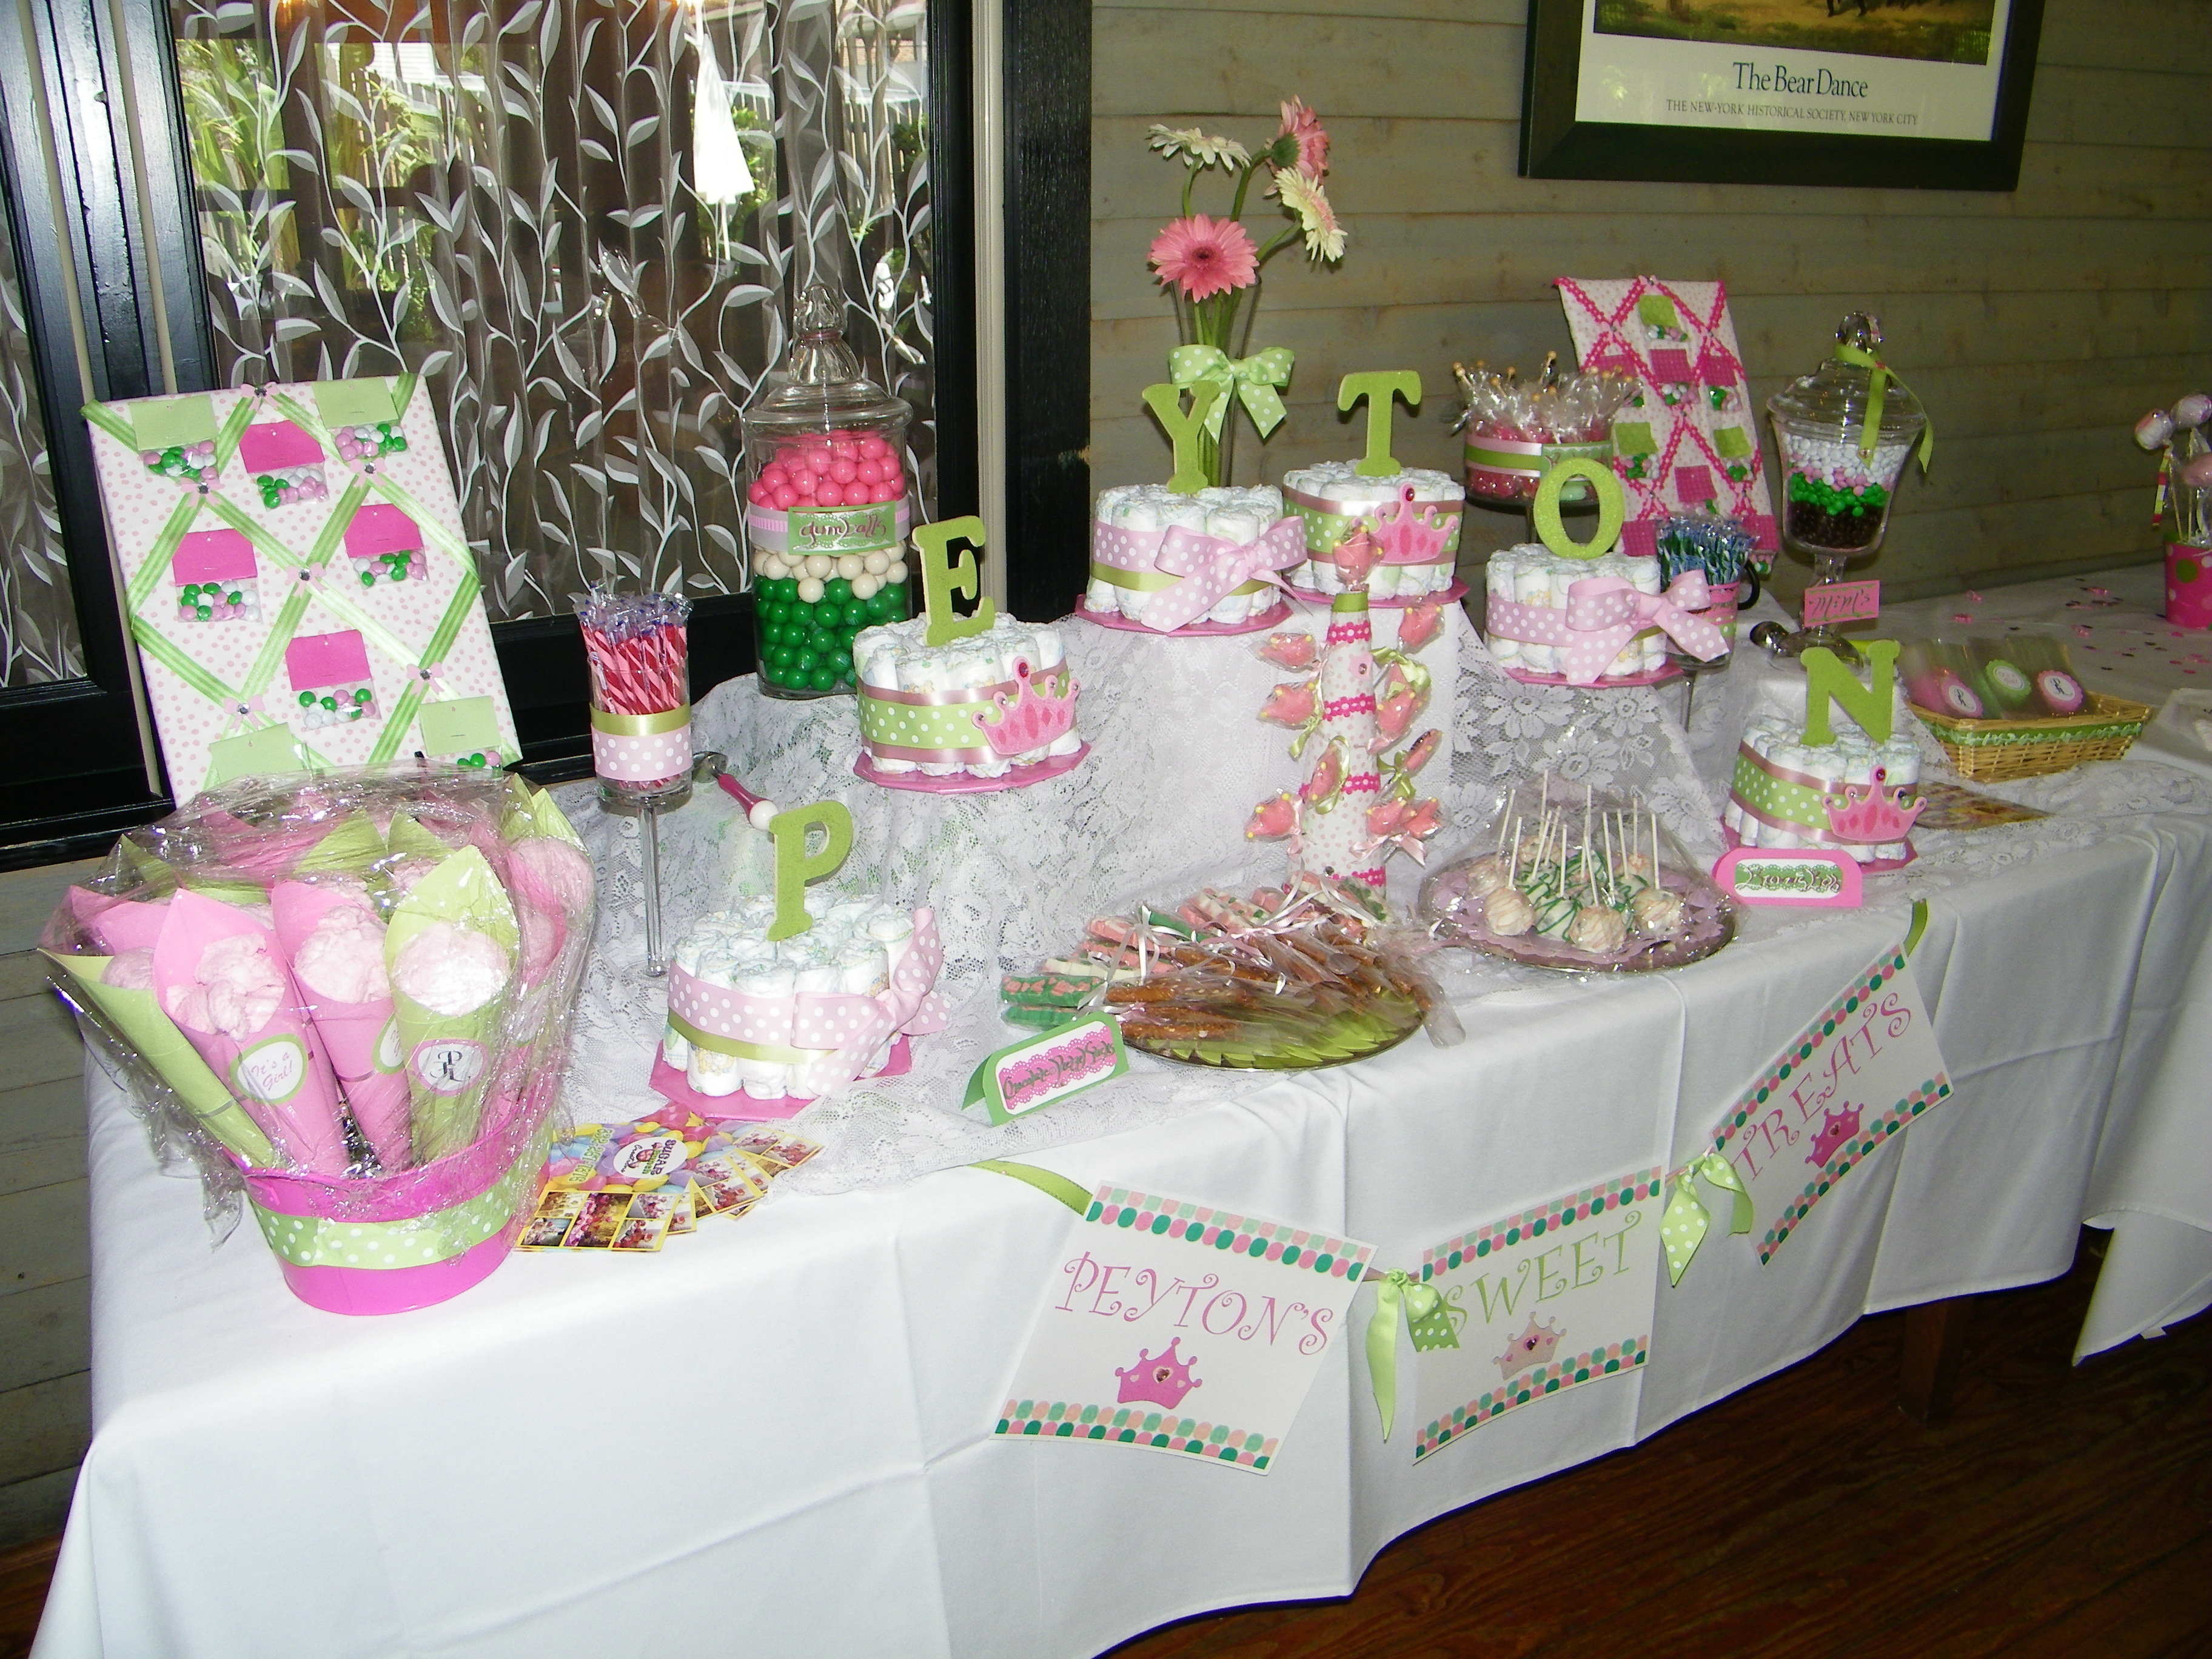 Reception, Flowers & Decor, Favors & Gifts, Bridesmaids, Bridesmaids Dresses, Cakes, Fashion, white, pink, green, cake, Favors, Party, Bridal, Candy, Buffet, Shower, Stations, Sugar bunch creations